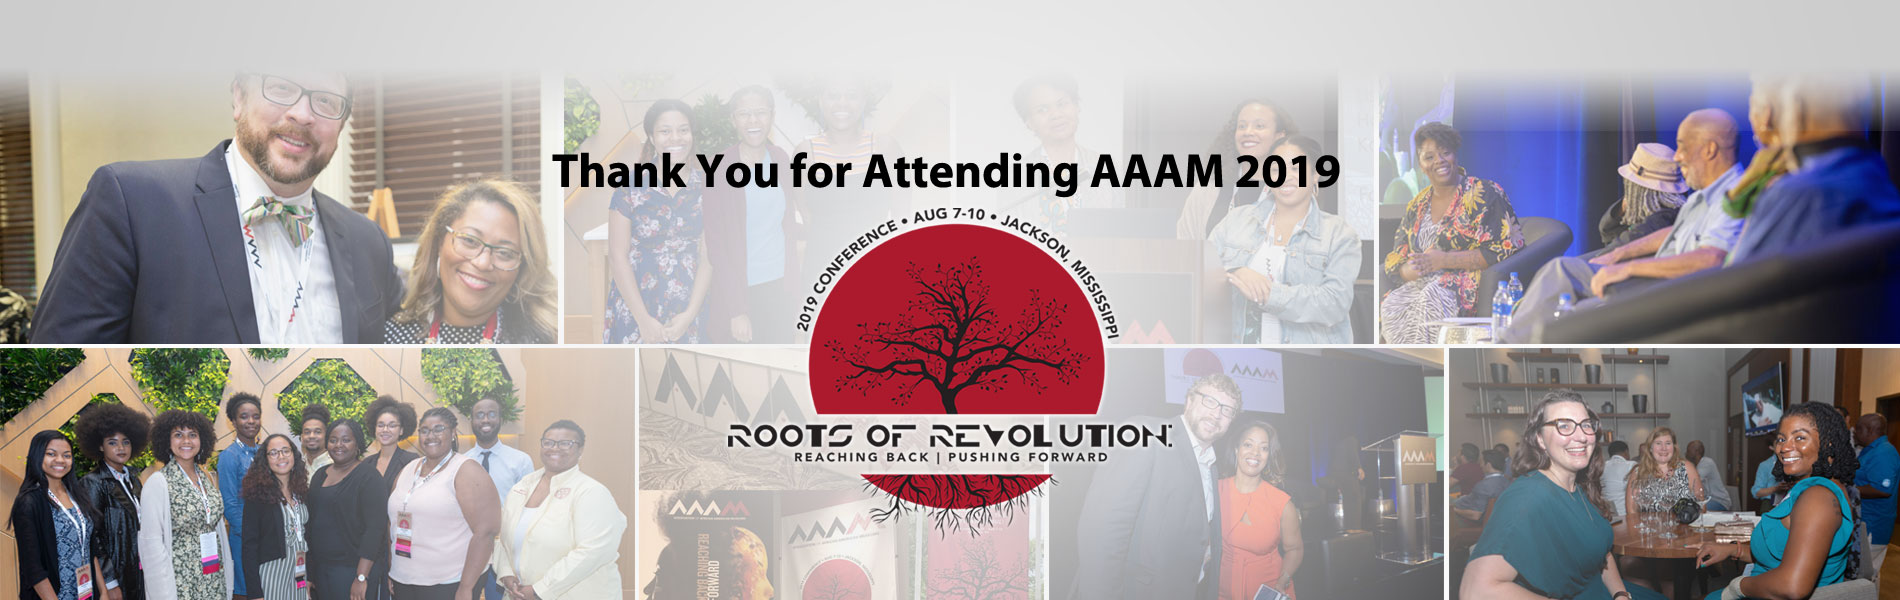 Thank you for attending AAAM 2019